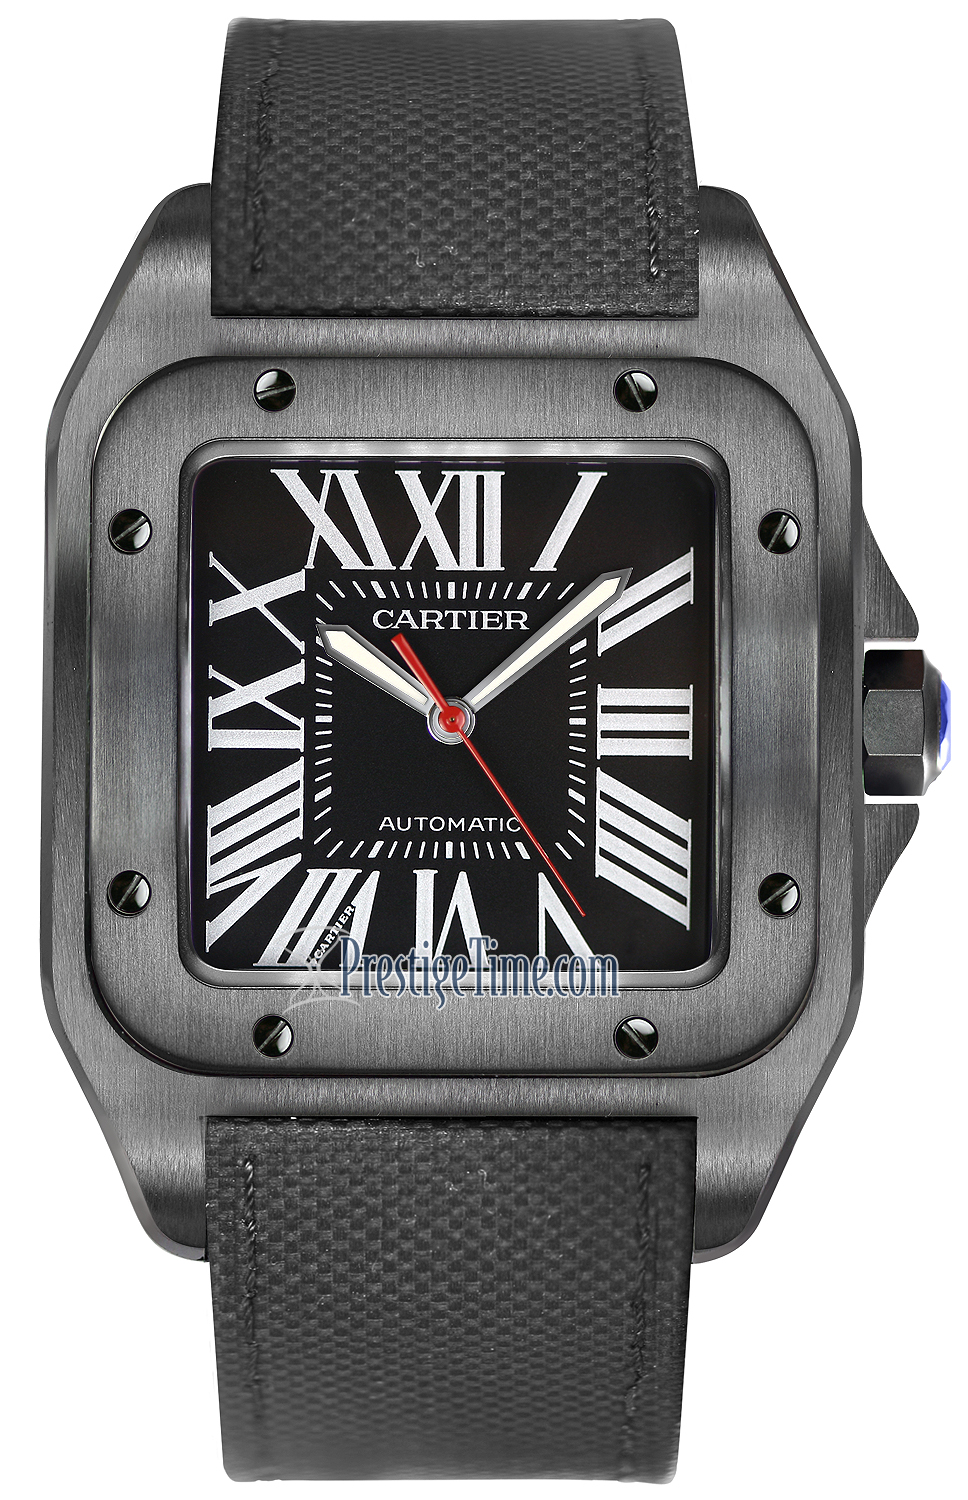 galbee watches santos authentic cartier watch de